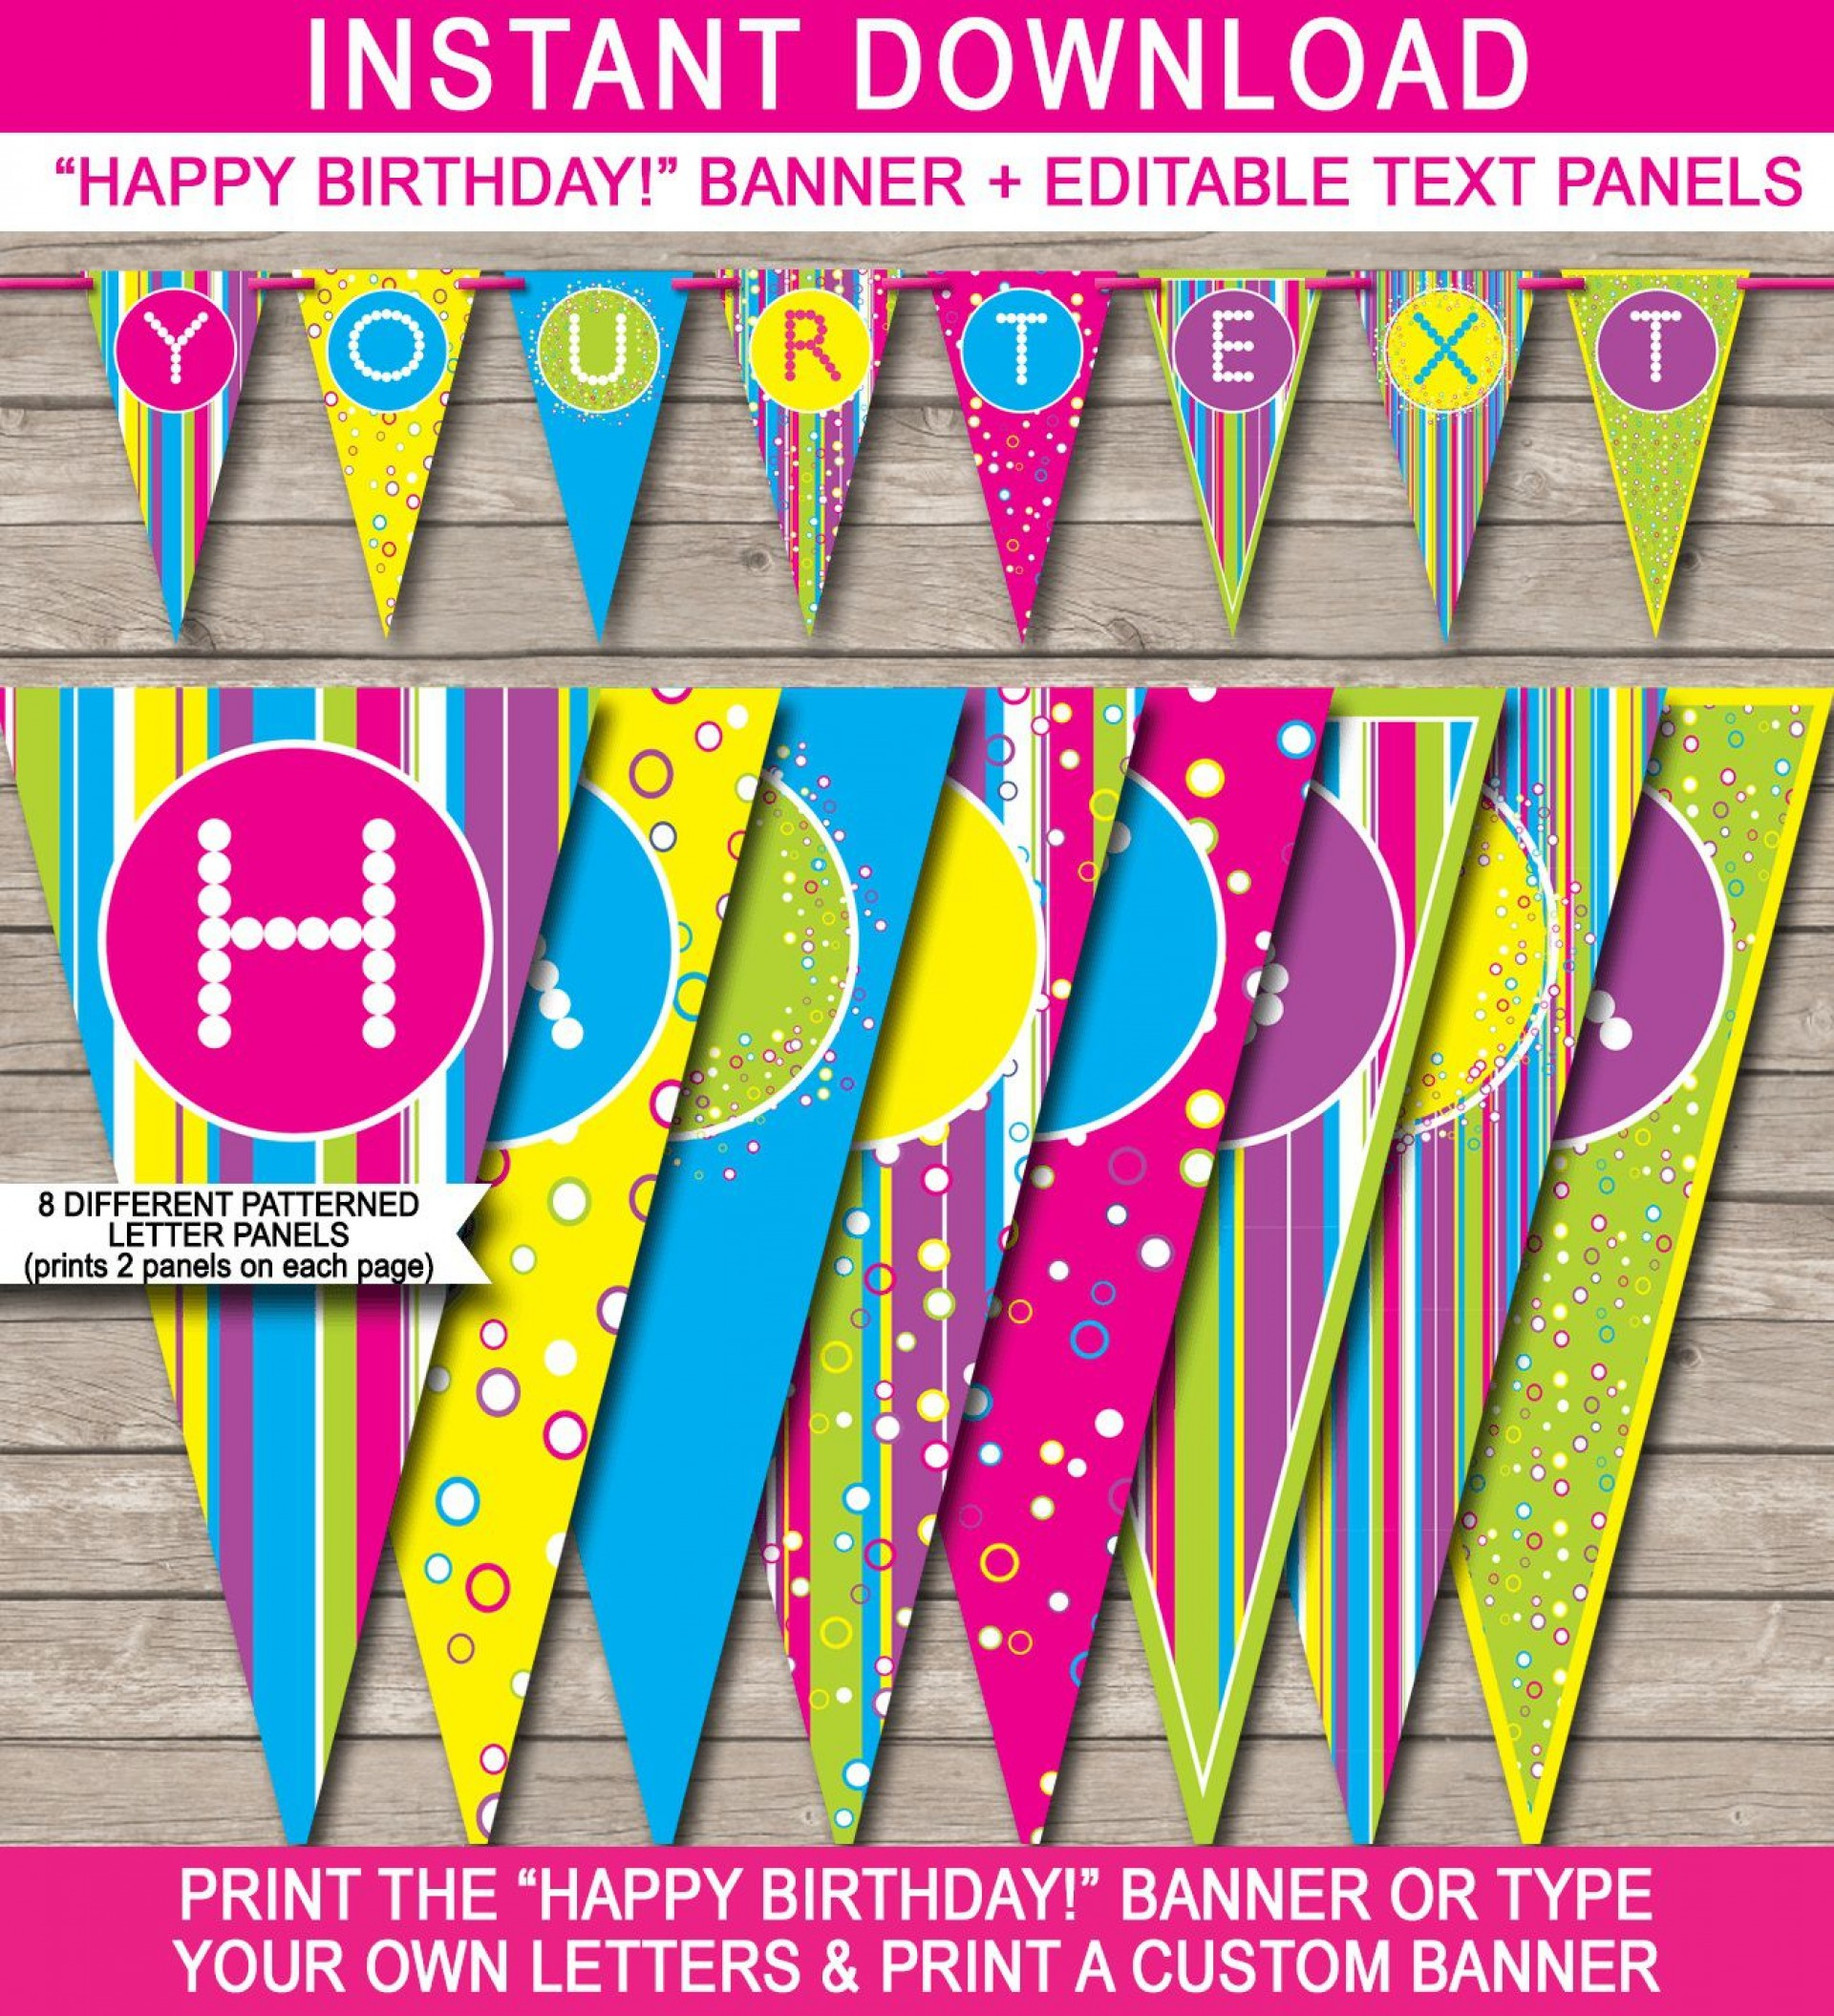 004 Simple Happy Birthday Banner Template Image  Publisher Editable Pdf1920